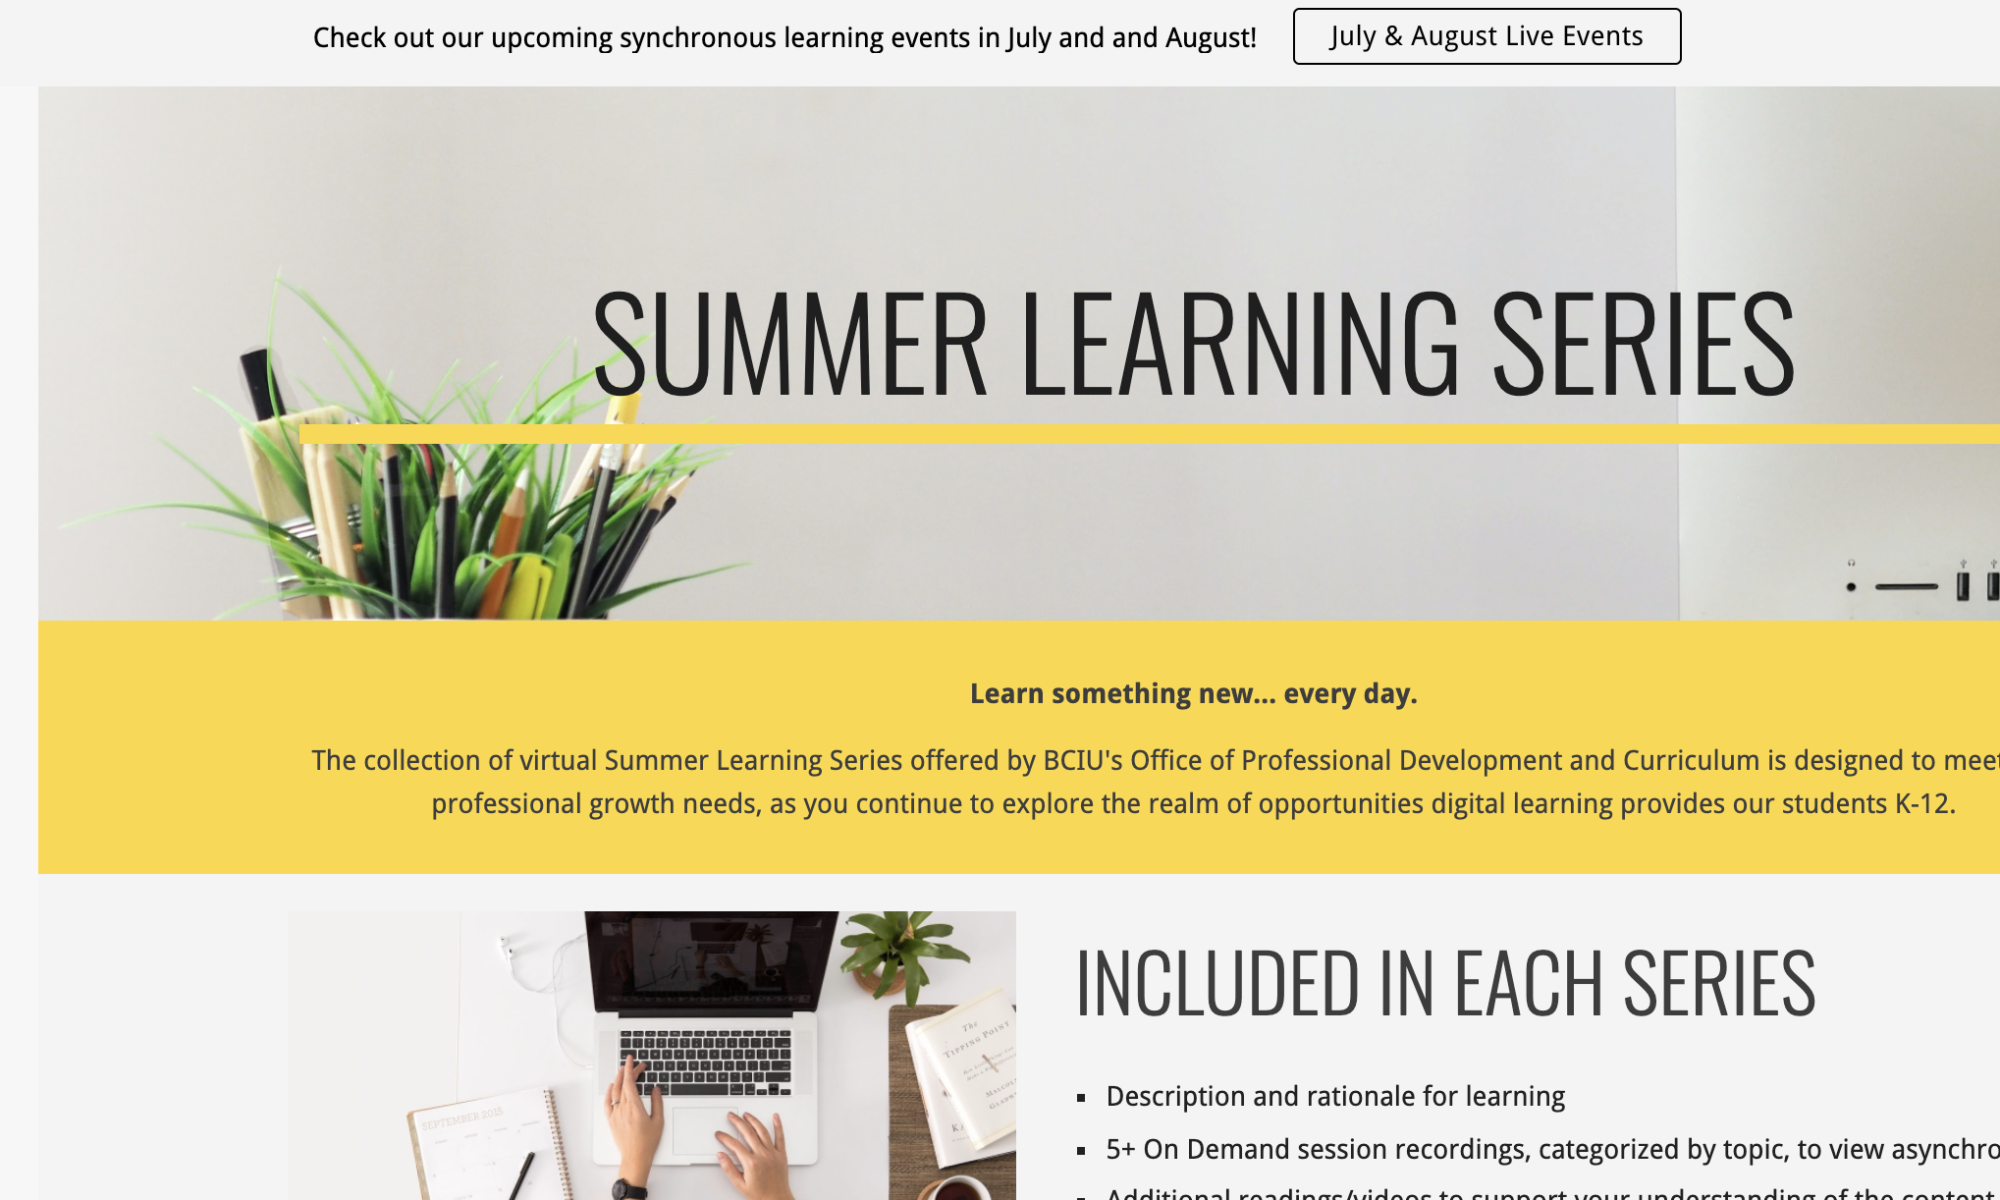 Summer Series website screenshot